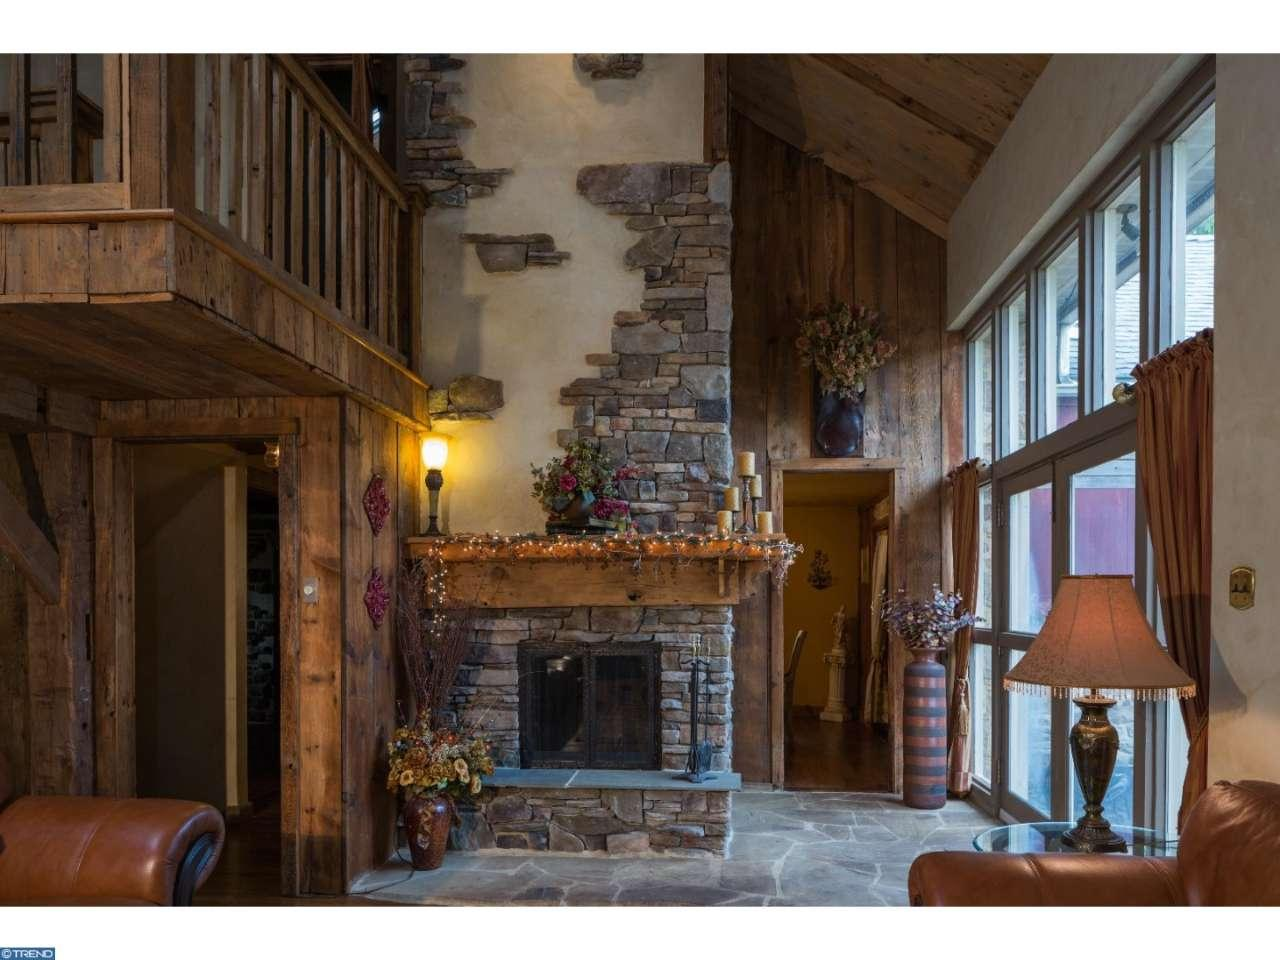 The Leap Year Barn 115 Arrons Ave Doylestown PA for sale - living room with stone storybook fireplace and wall of windows